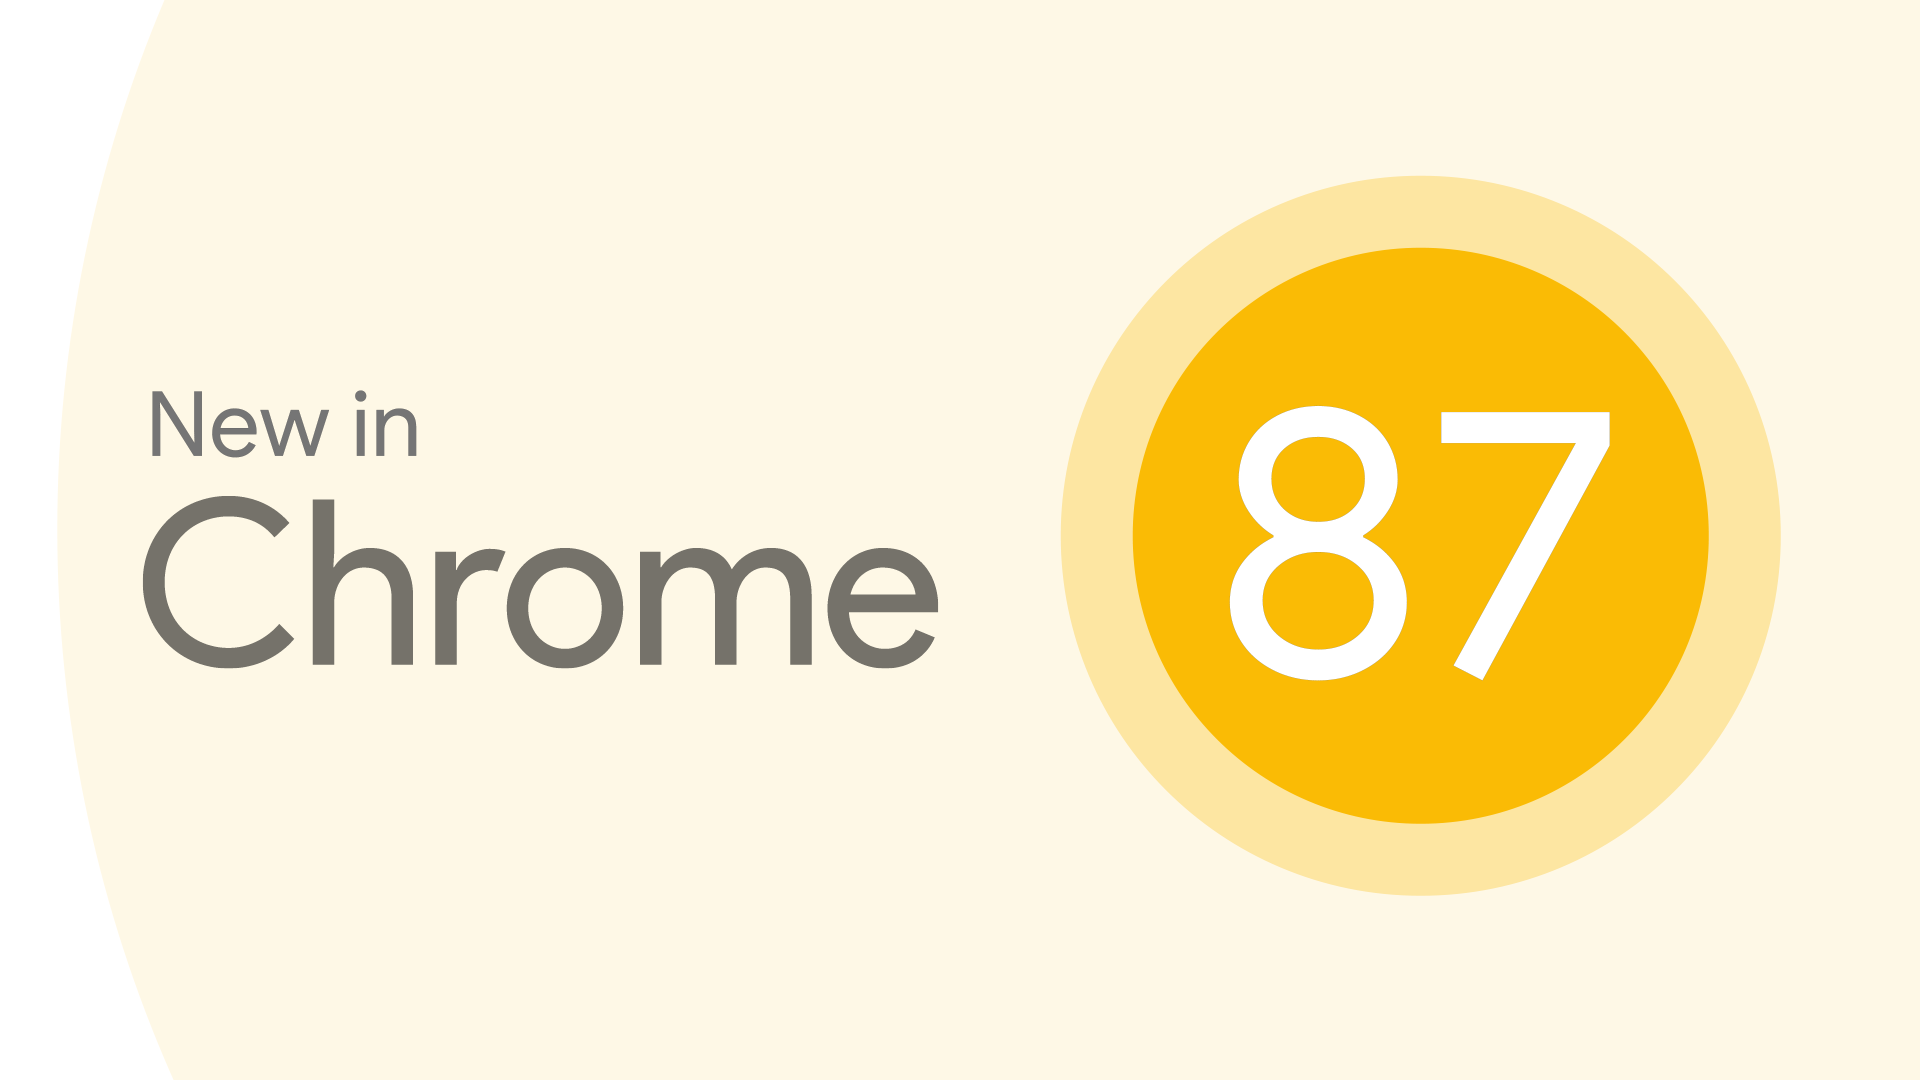 New in Chrome 87